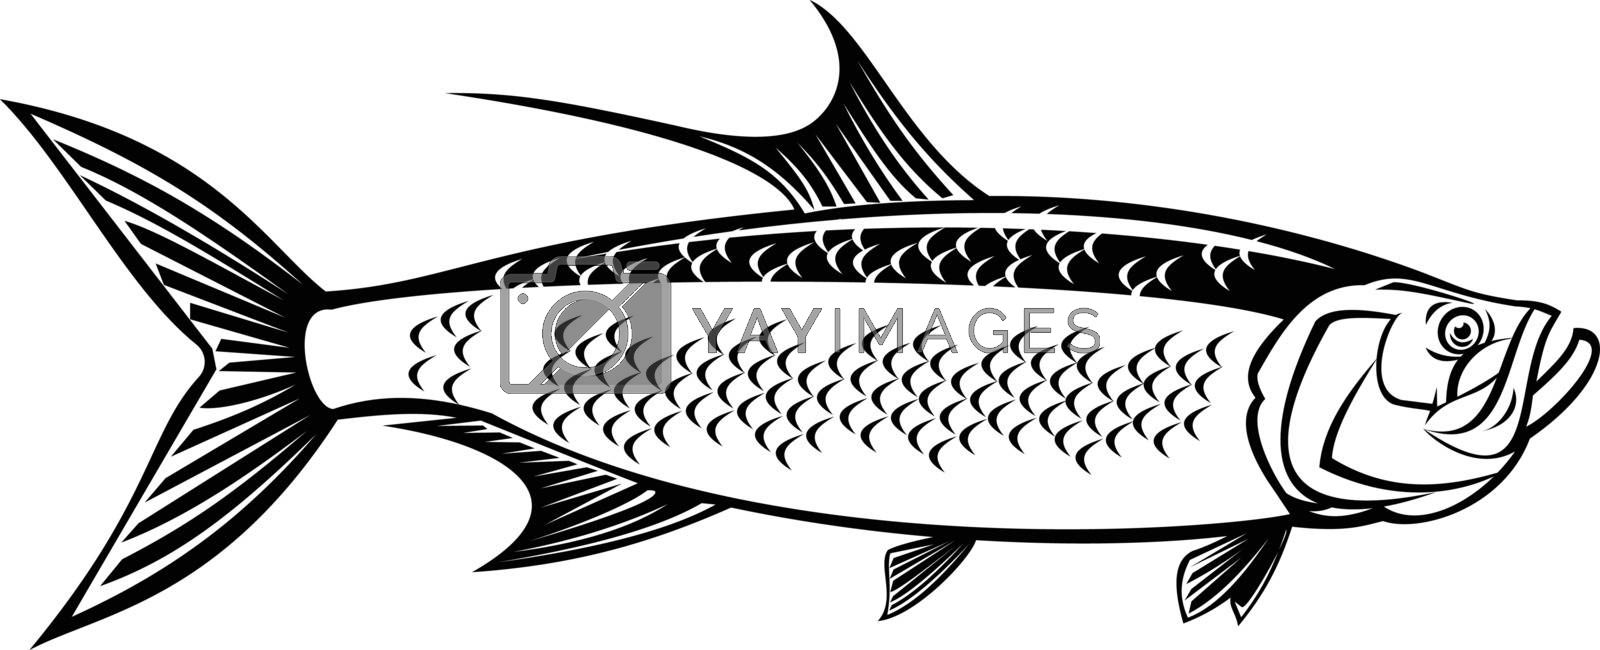 Retro style illustration of an Atlantic tarpon, Megalops atlanticus, Tarpon atlanticus silver king, grand Ecaille or sabalo real, viewed from side on isolated background done in black and white.